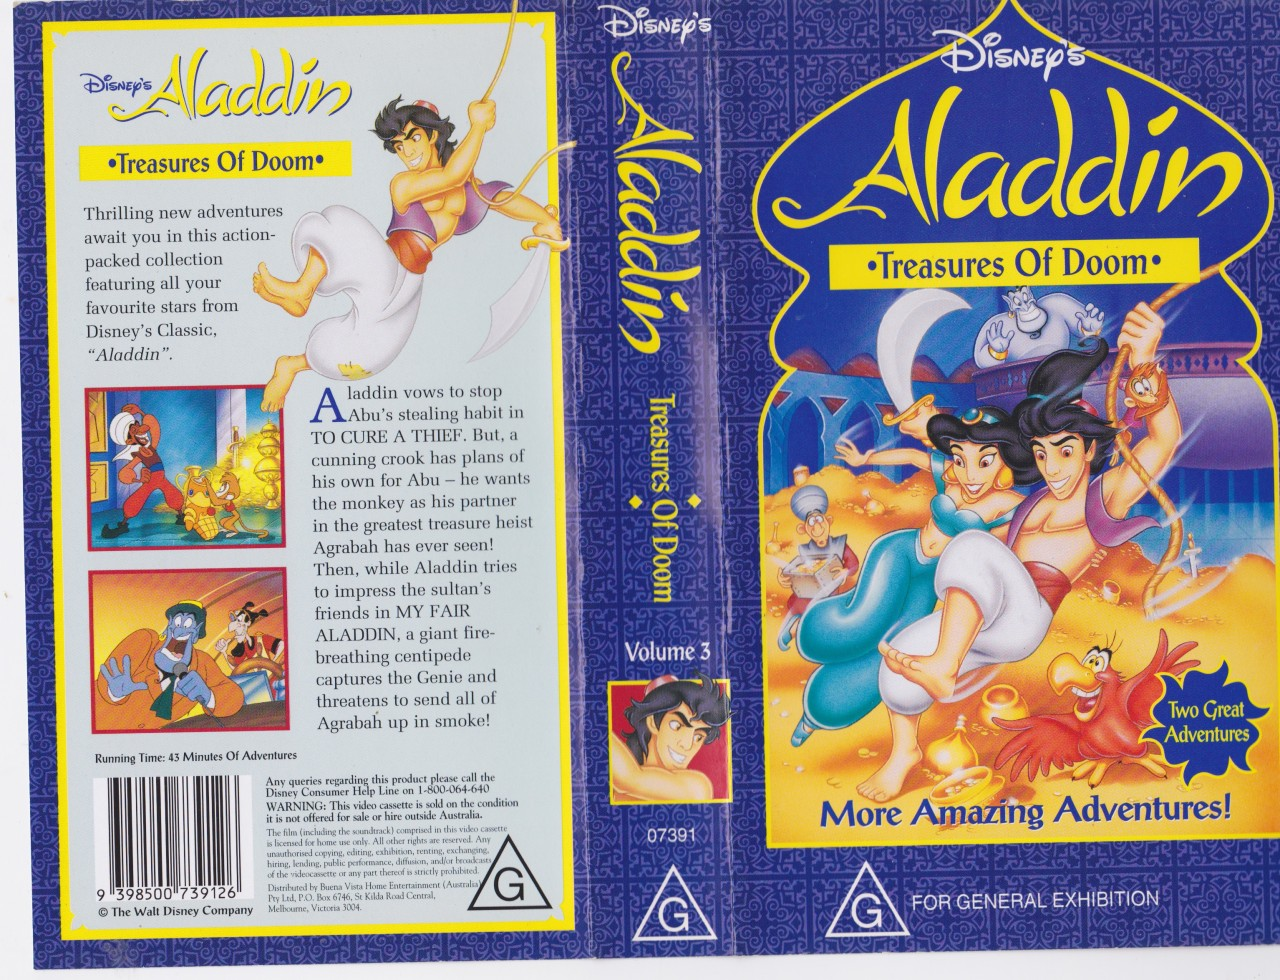 aladdin treasures of doom